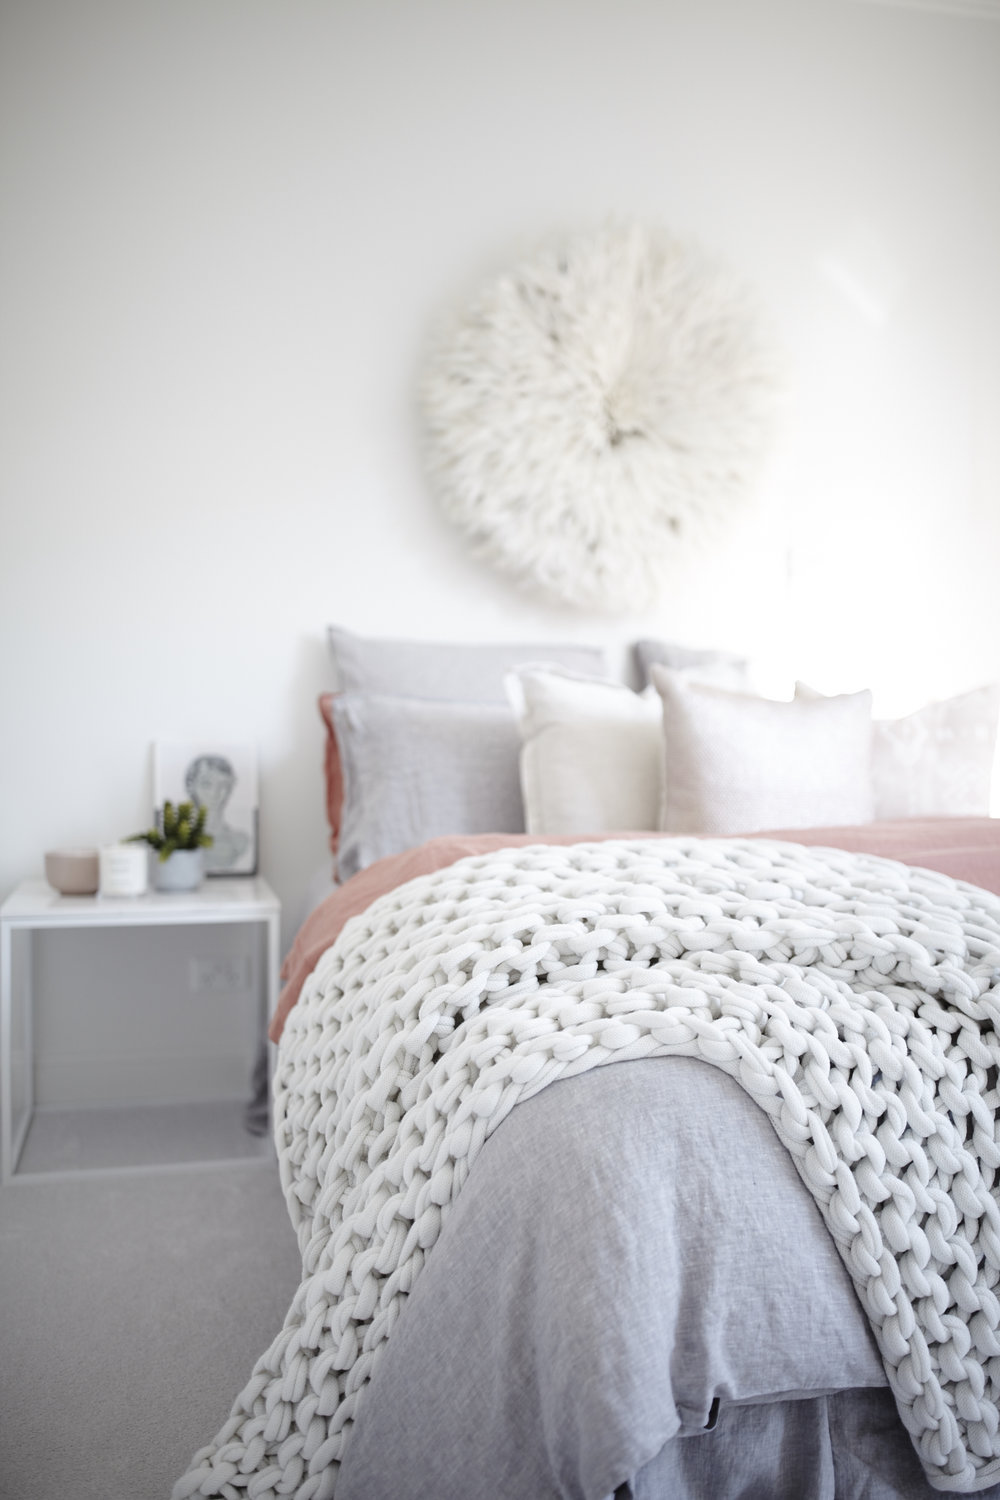 Bedroom with white knit blanket and feather wall decor